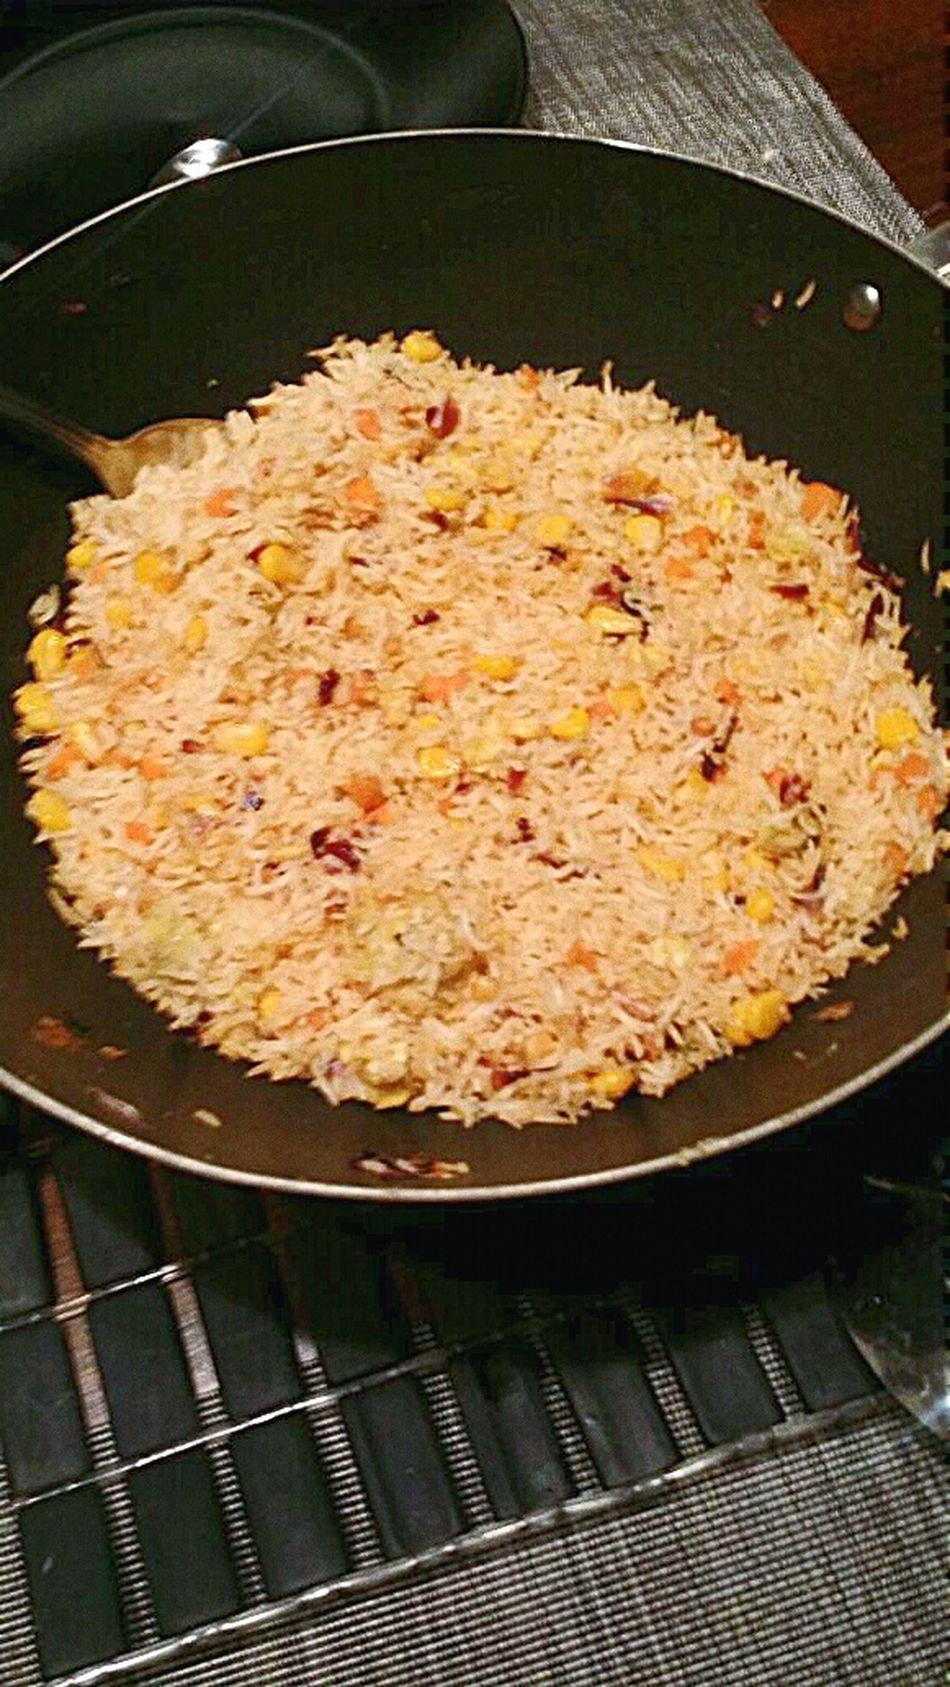 Lahore Food Street Chinesefood Asian Culture Traditionalfood First Eyeem Photo Chinese Rice